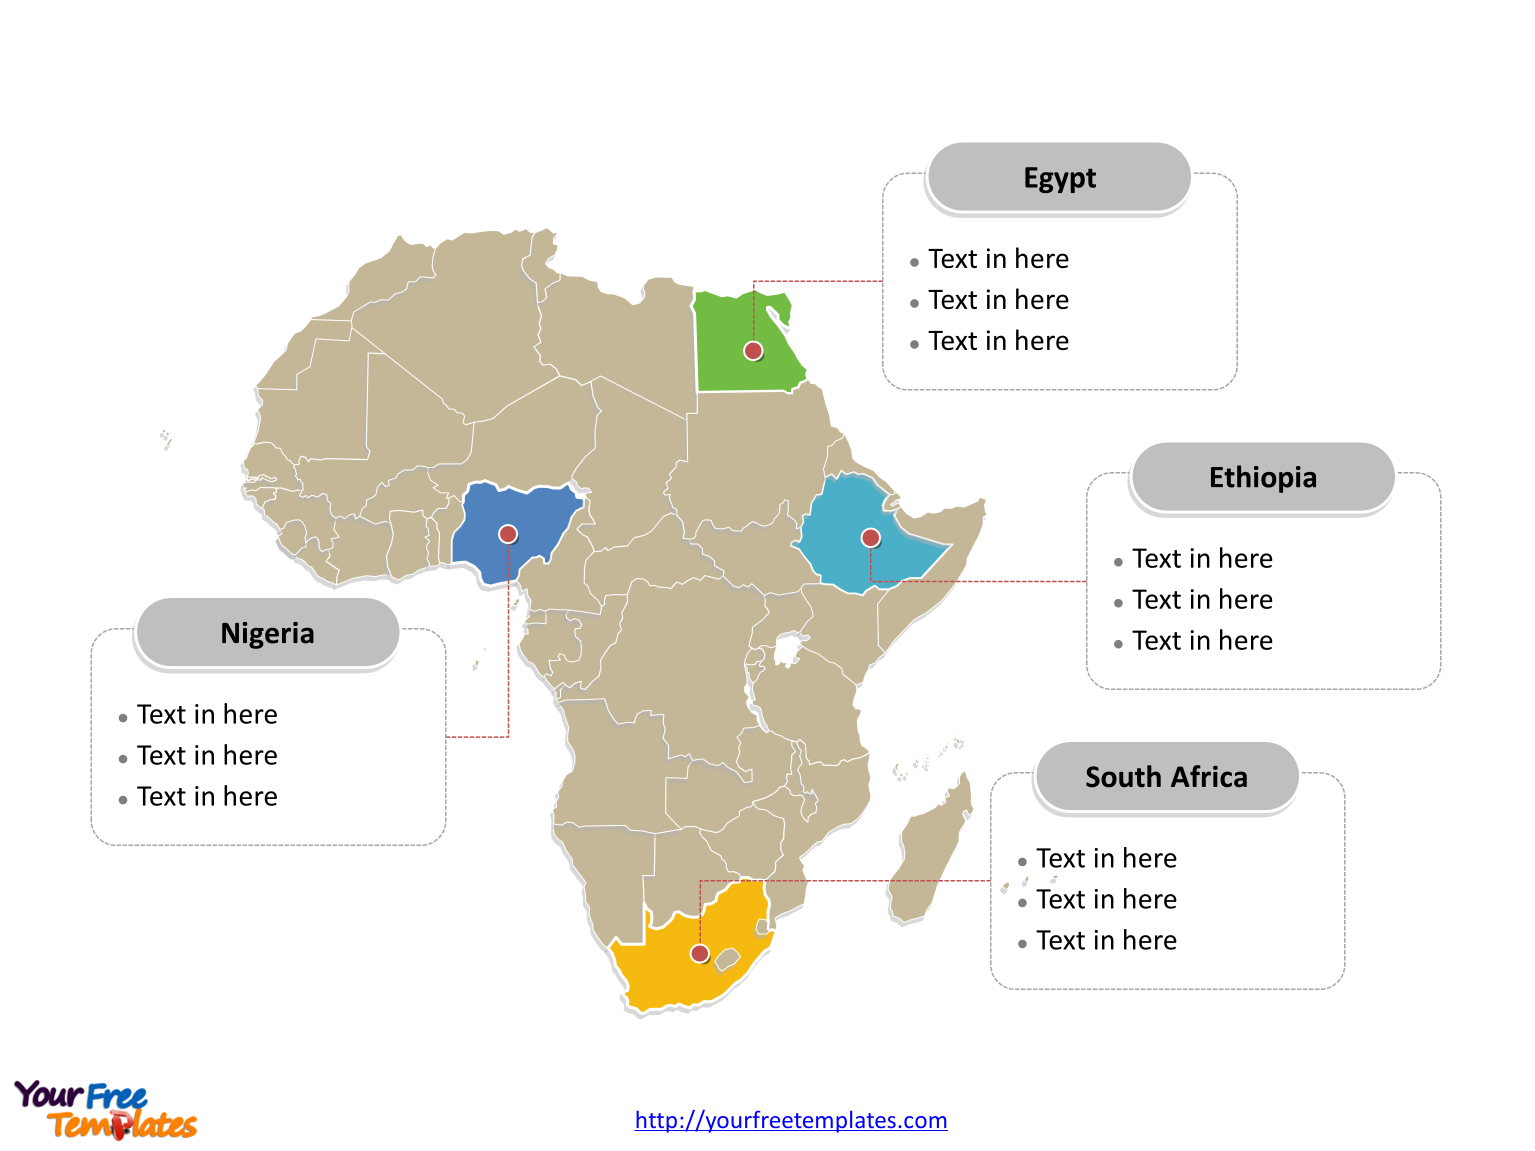 Map of africa free templates free powerpoint templates map of africa with political division and major countries labeled on the africa map free templates ccuart Images